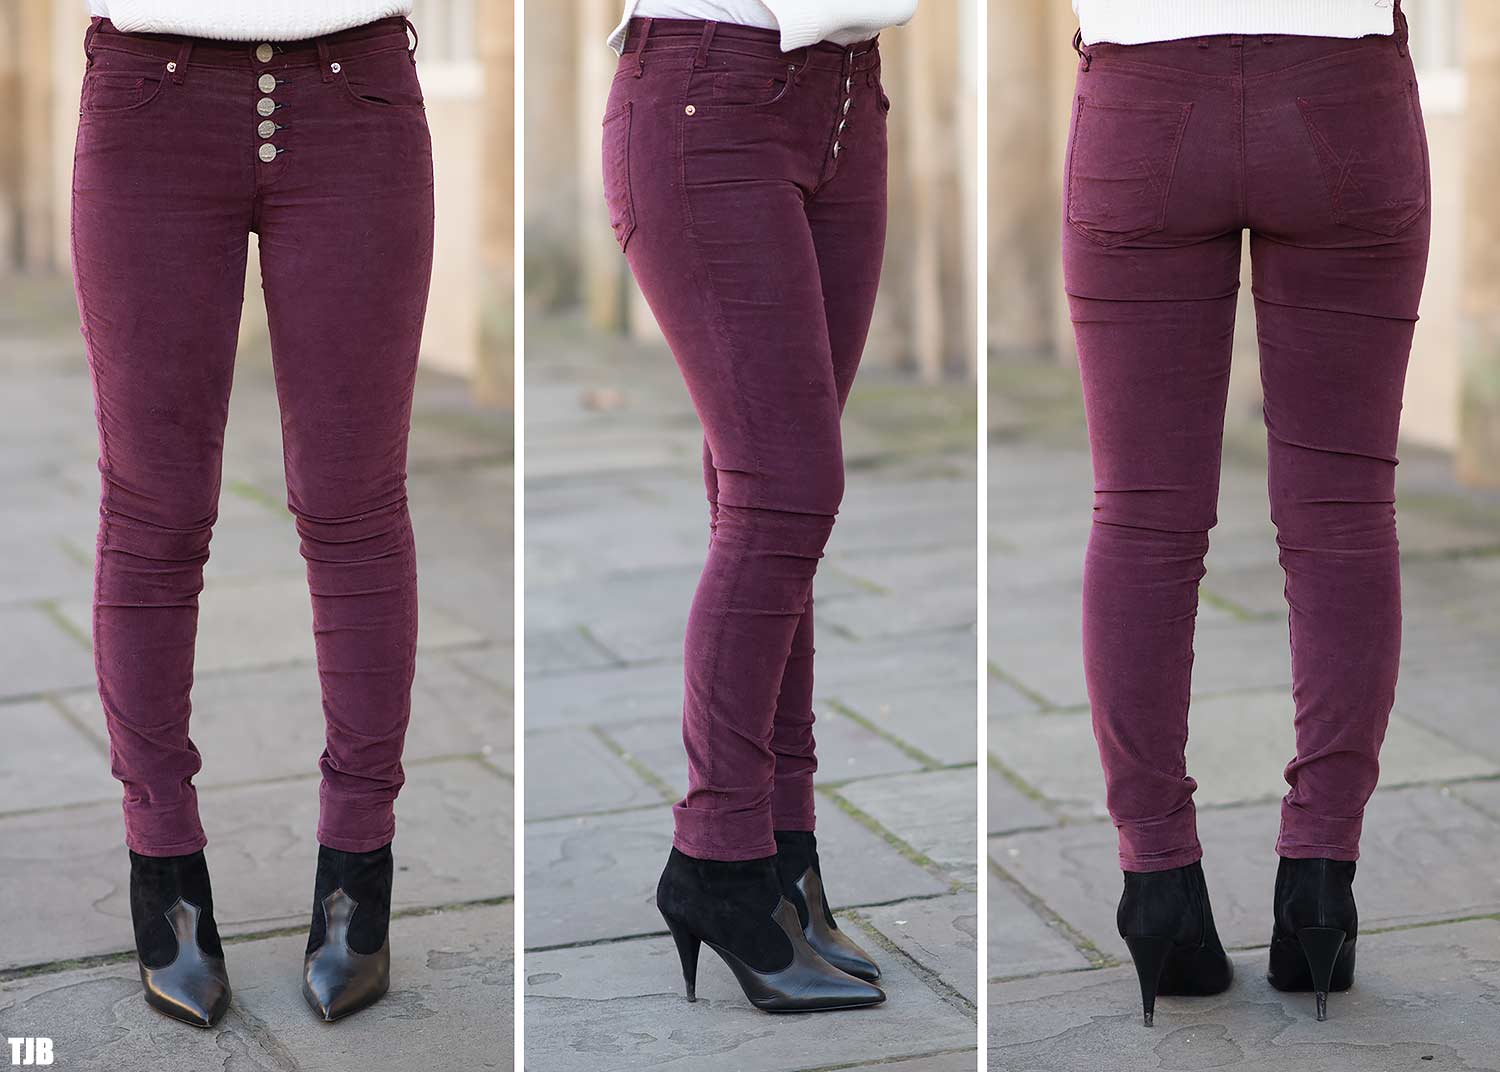 mcguire-denim-newton-exposed-button-skinny-pants-in-pinot-review-10